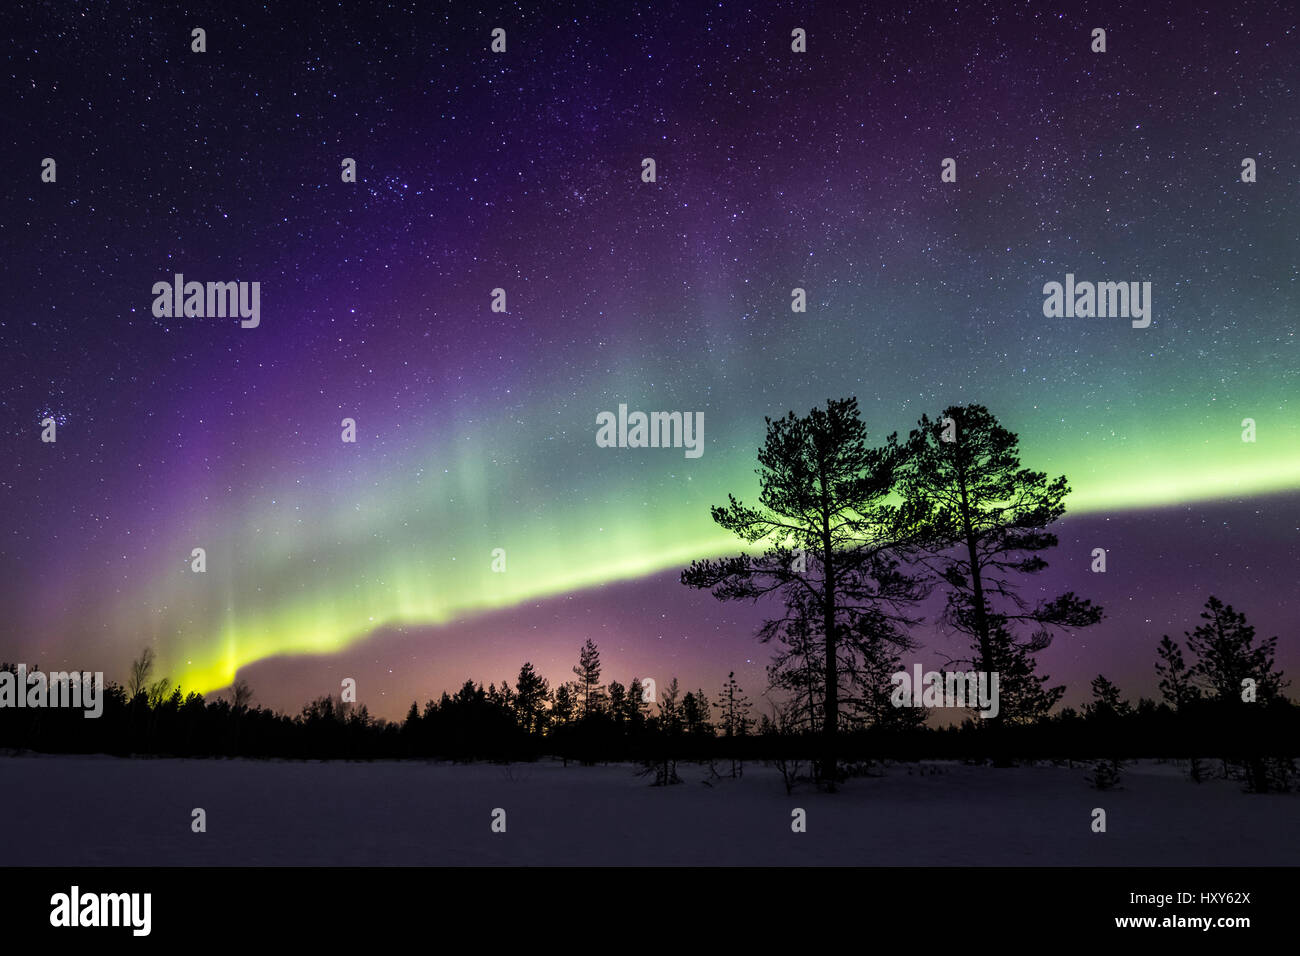 Aurora over a Finnish mire - Stock Image